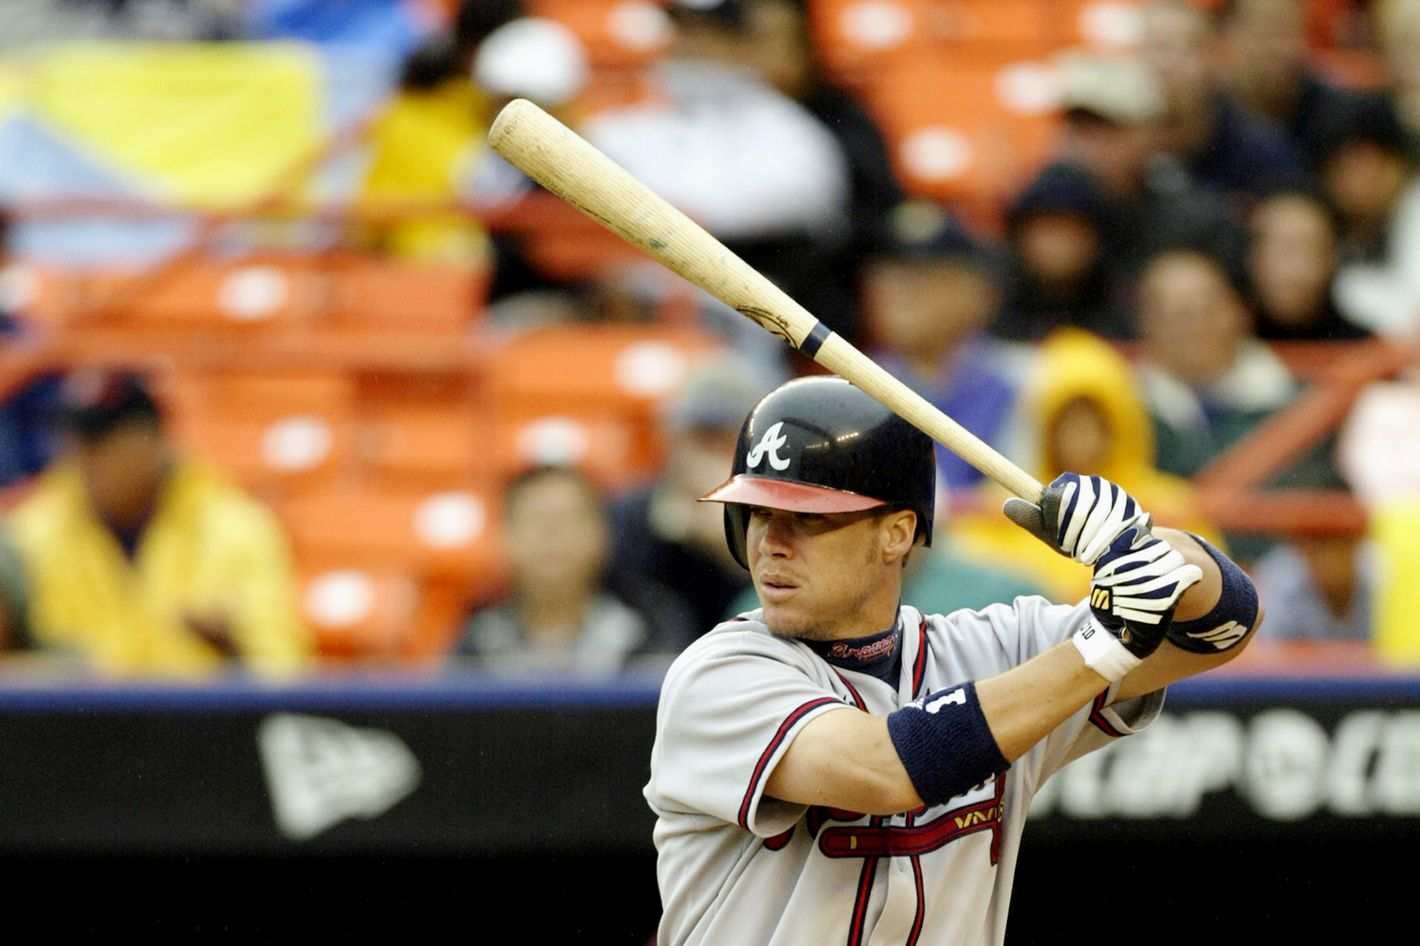 Left fielder Chipper Jones #10 of the Atlanta Braves readies for the pitch during the game against the New York Mets at Shea Stadium  on September 1, 2003 in Queens, New York. The Mets defeated the Braves 3-2.